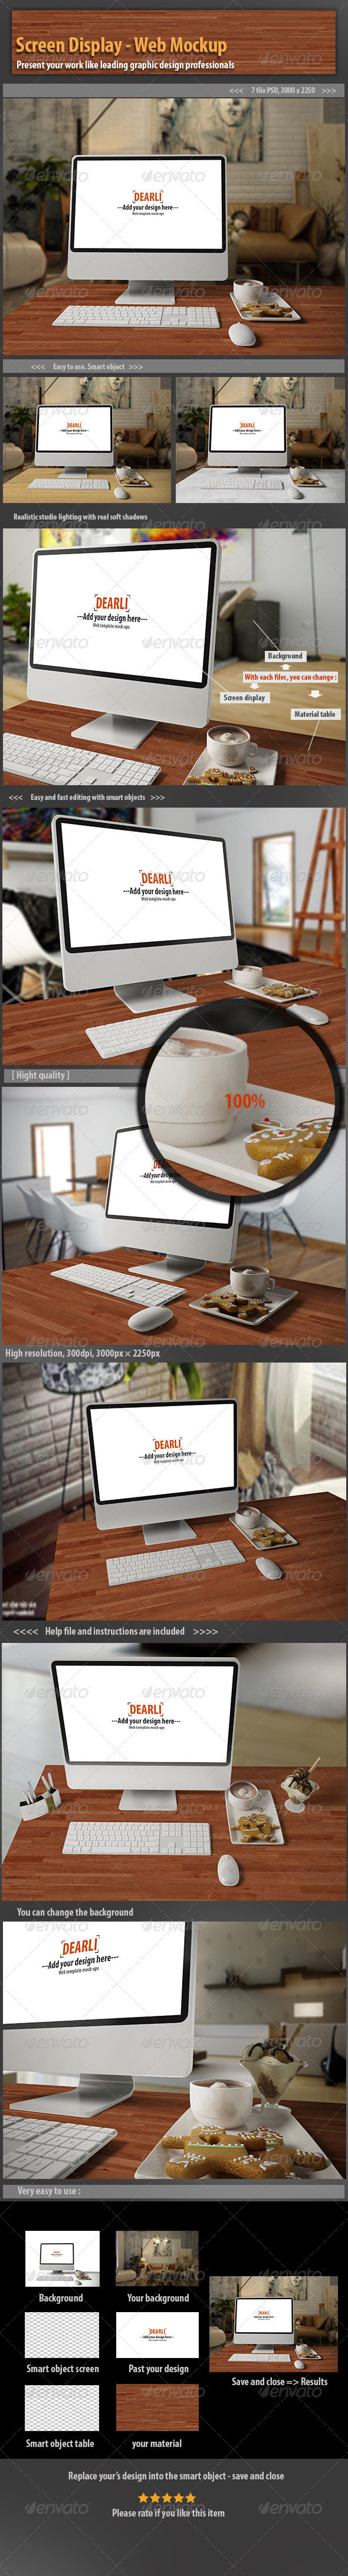 GraphicRiver Screen Display- Web Mockup 6626045